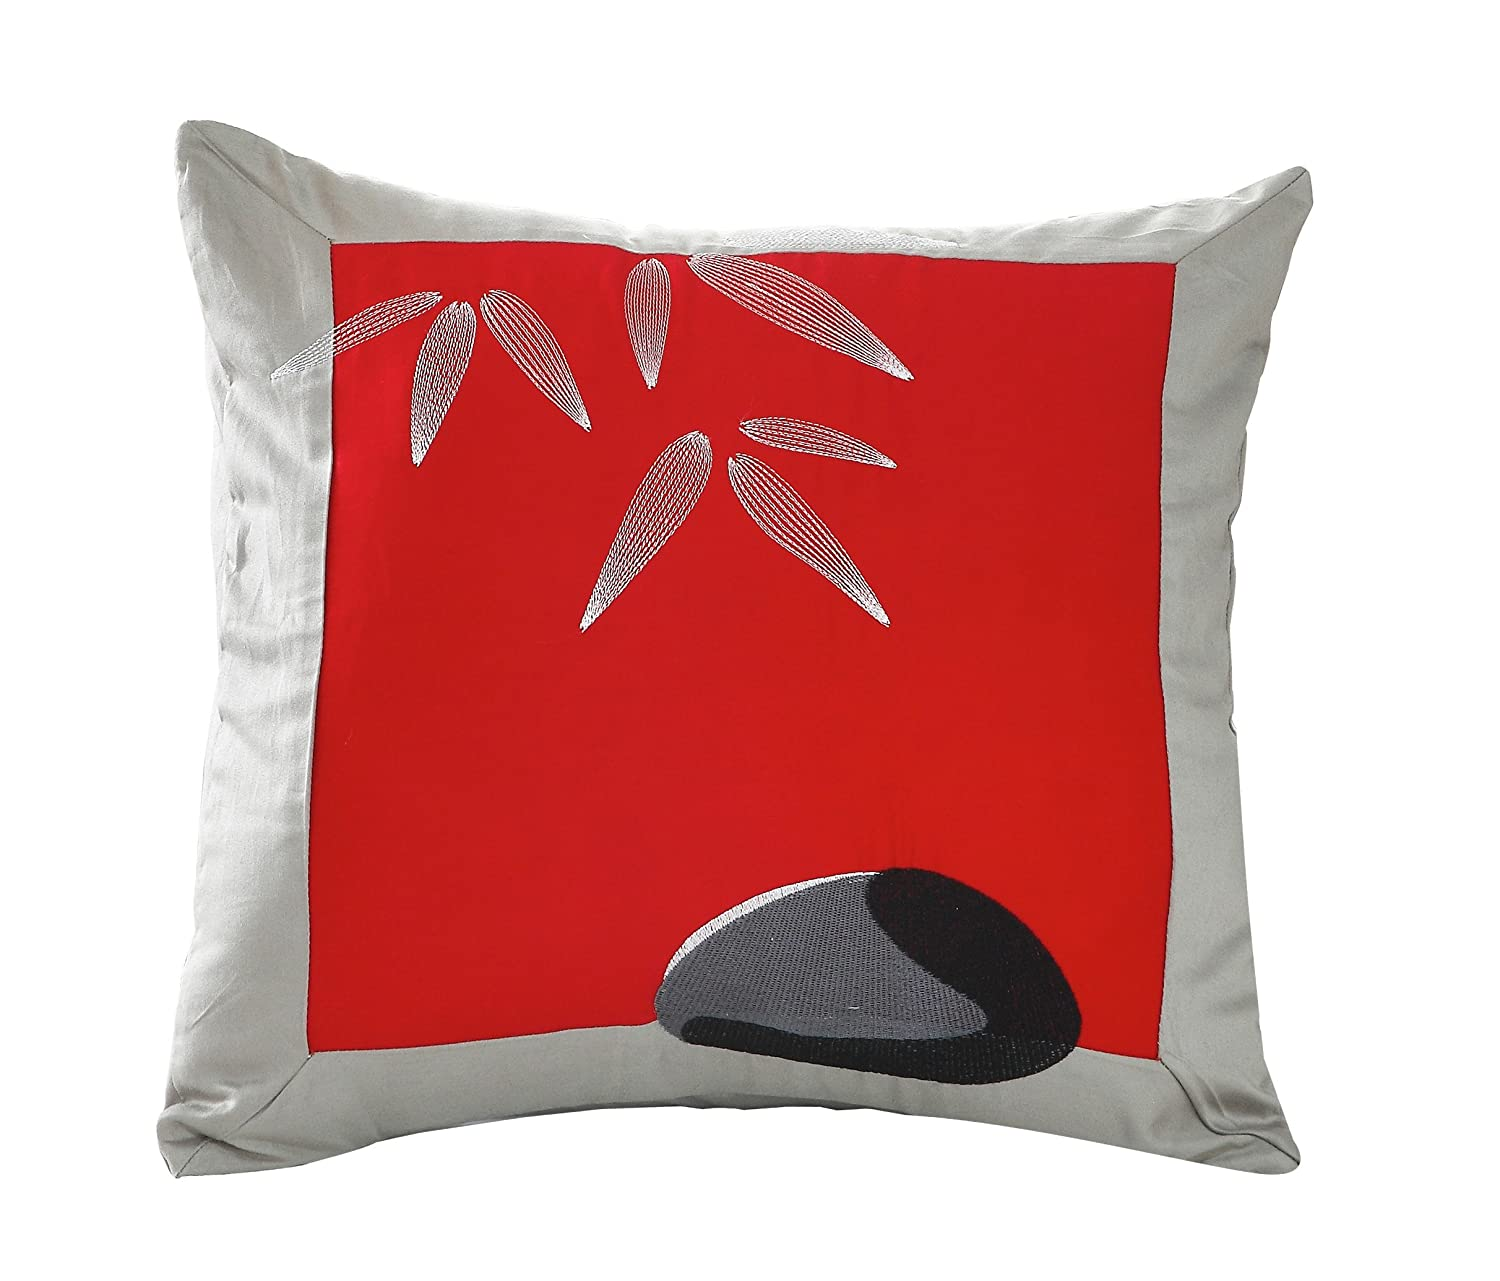 silver and black pillow slip Euro sham cover oversized pillowcase 26x26 Asian inspired decorative contemporary fashionable design with Zen calligraphy Japanese poetry verse orientsense COMINHKR041887 Red